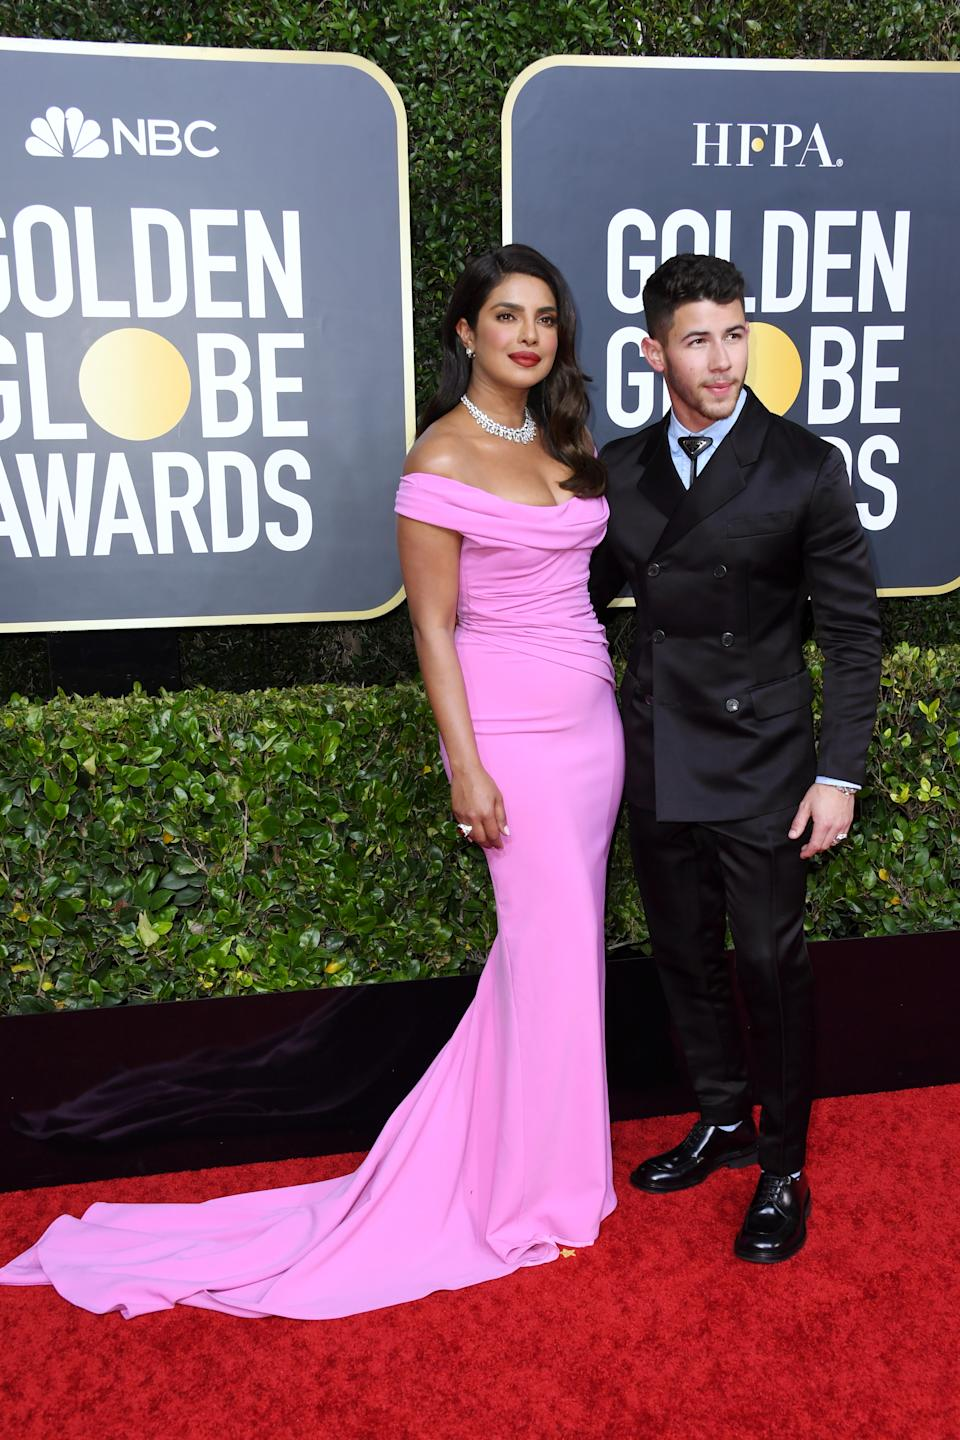 The A-list couple channelled old Hollywood glamour as they posed for the cameras. (Photo by Jon Kopaloff/Getty Images)